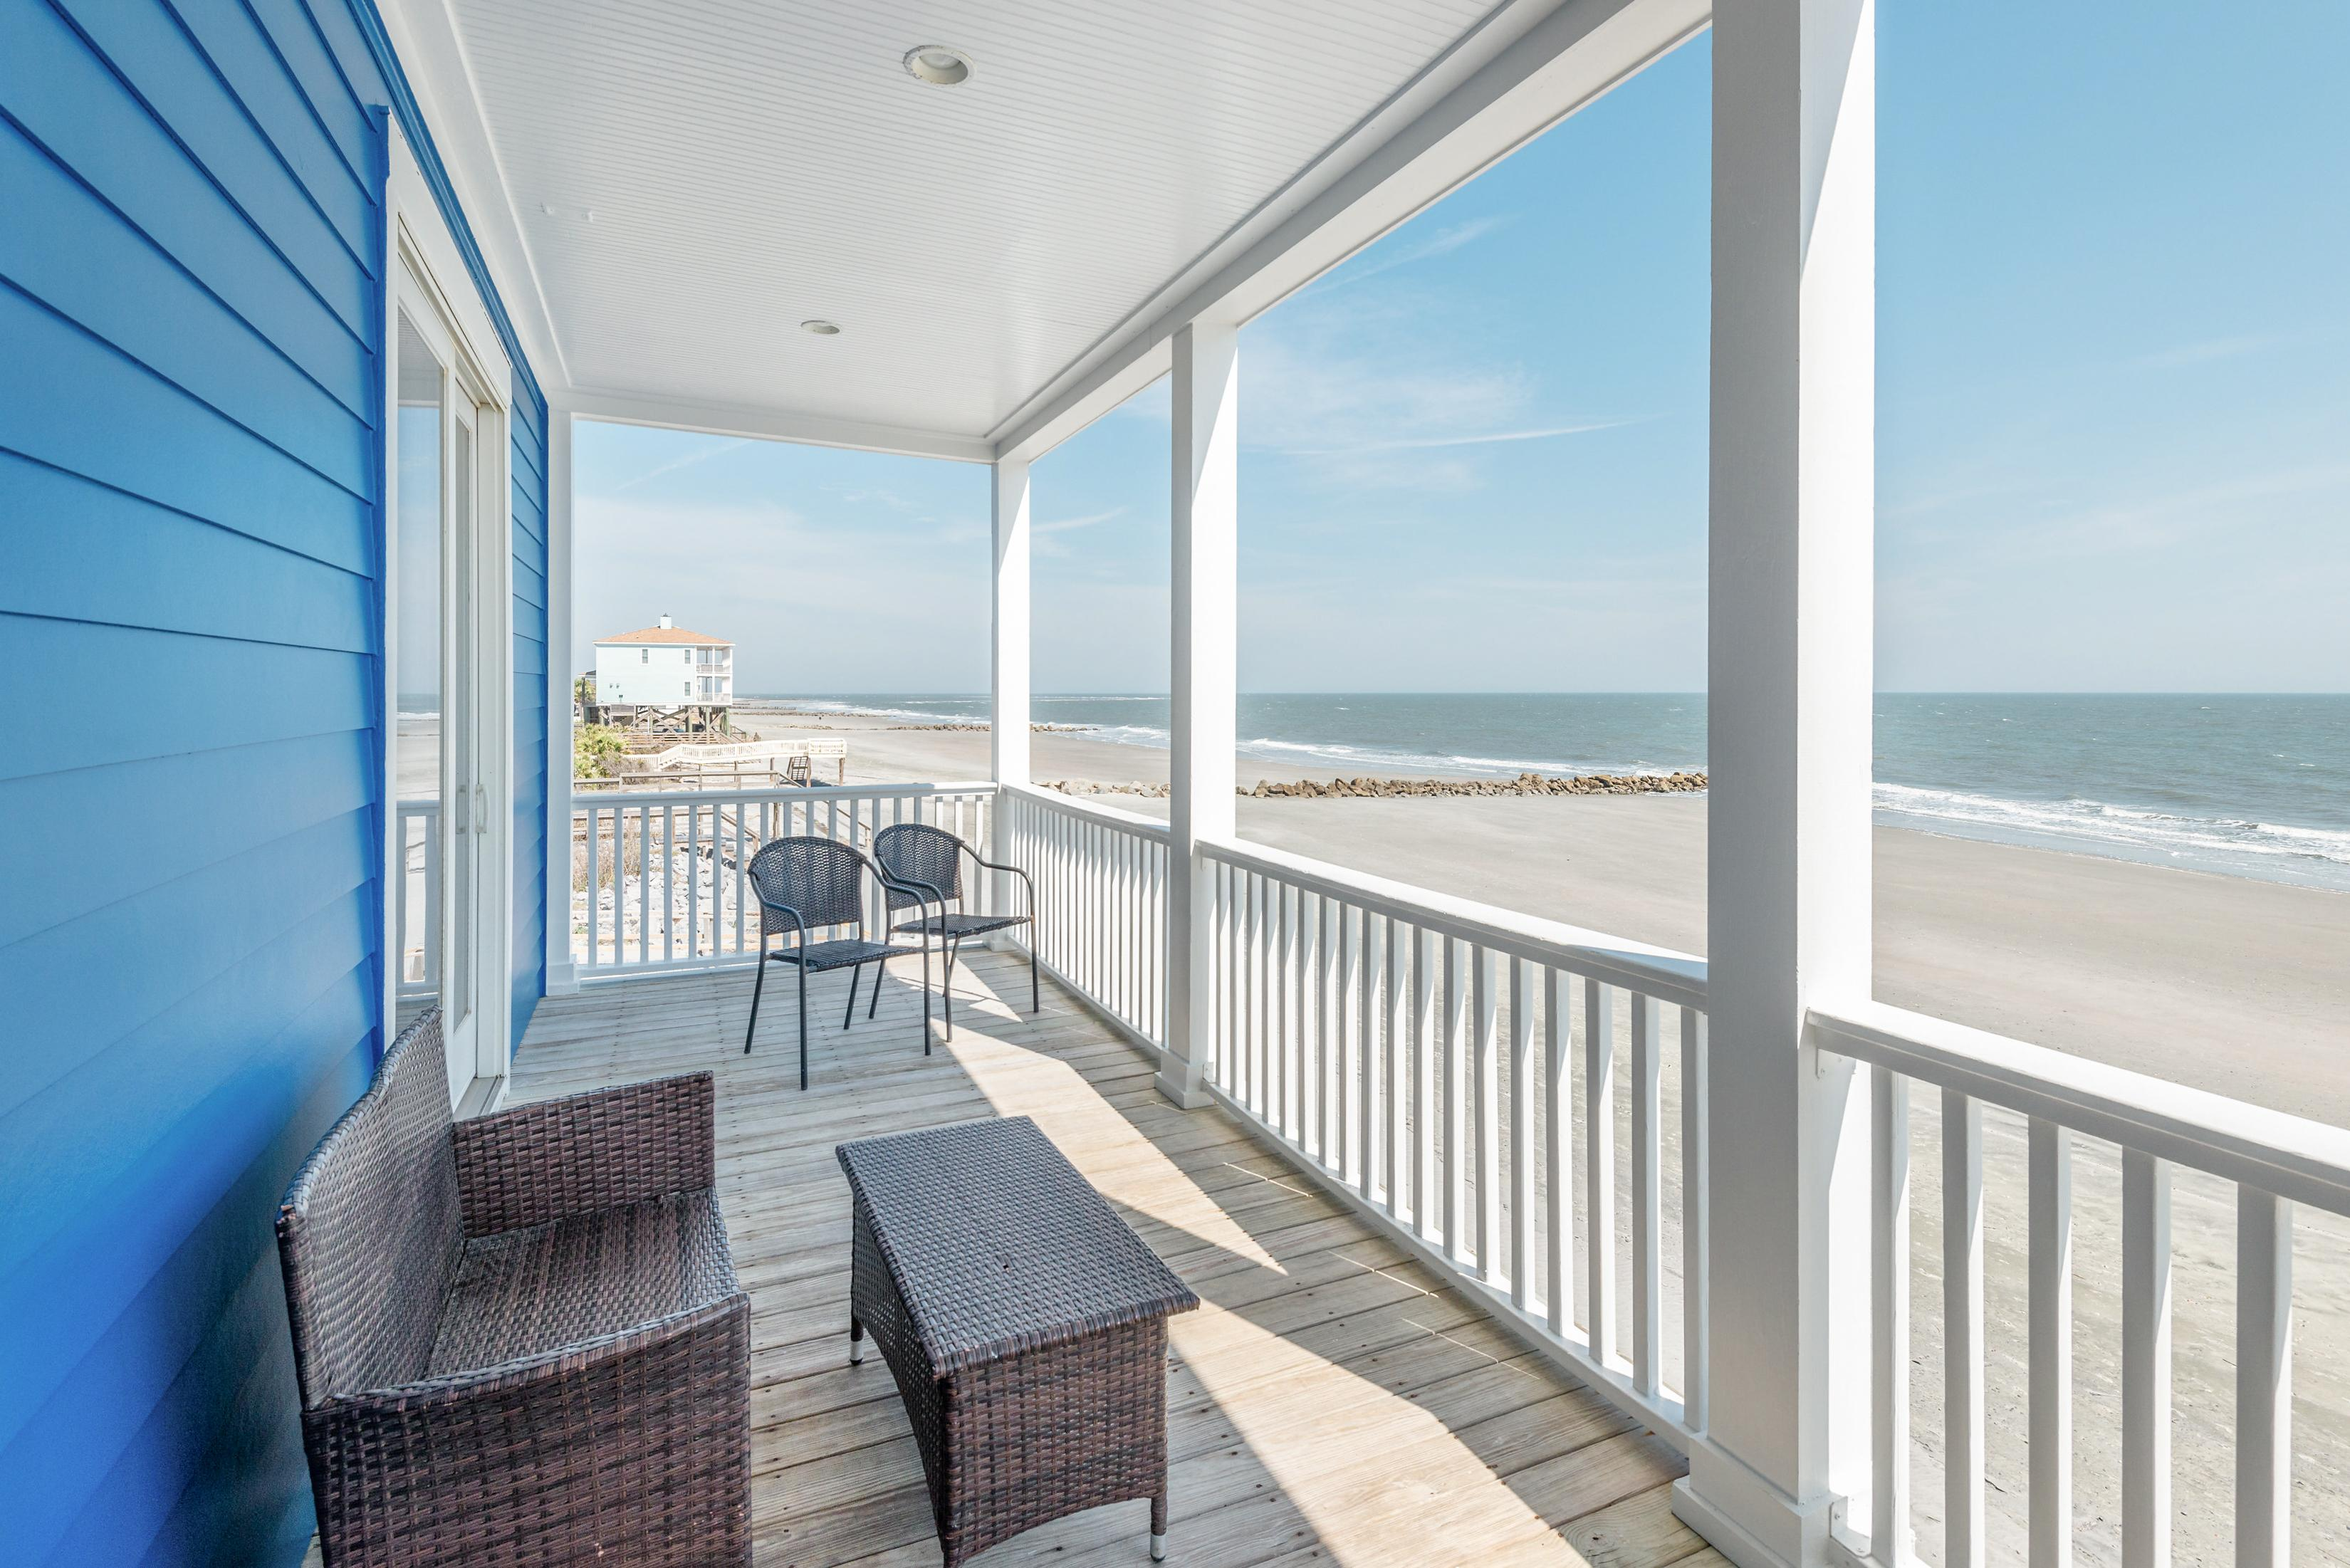 Property Image 1 - Delightful Oceanfront Gem with Stunning Ocean Views